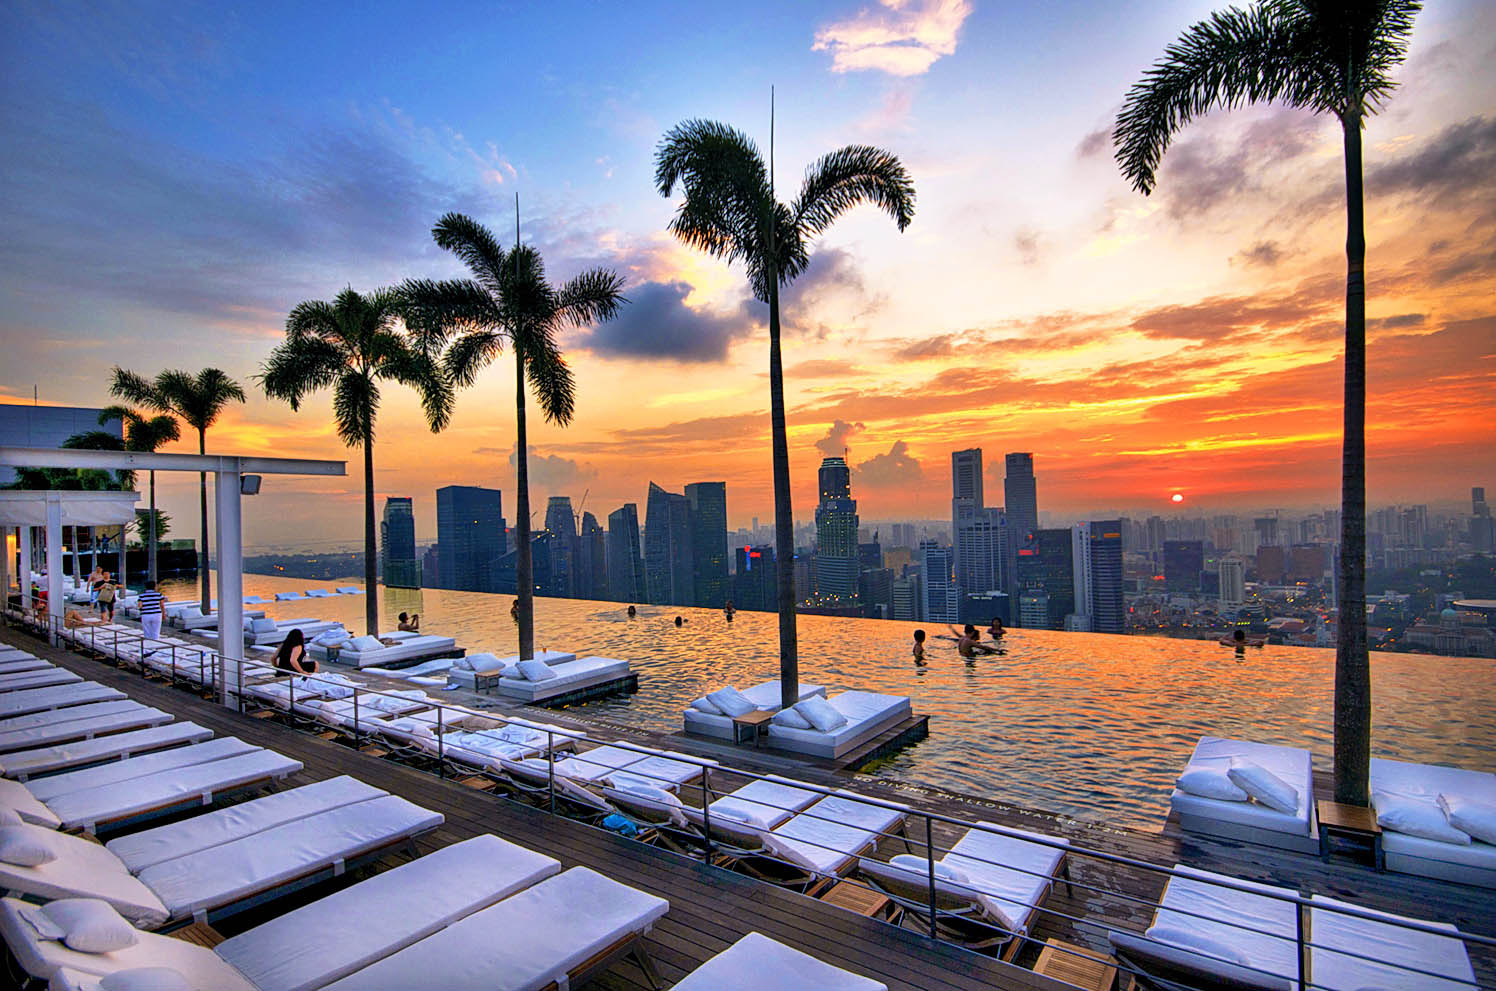 Marina bay sands integrated resort pwp landscape architecture - Singapore hotel piscina ...